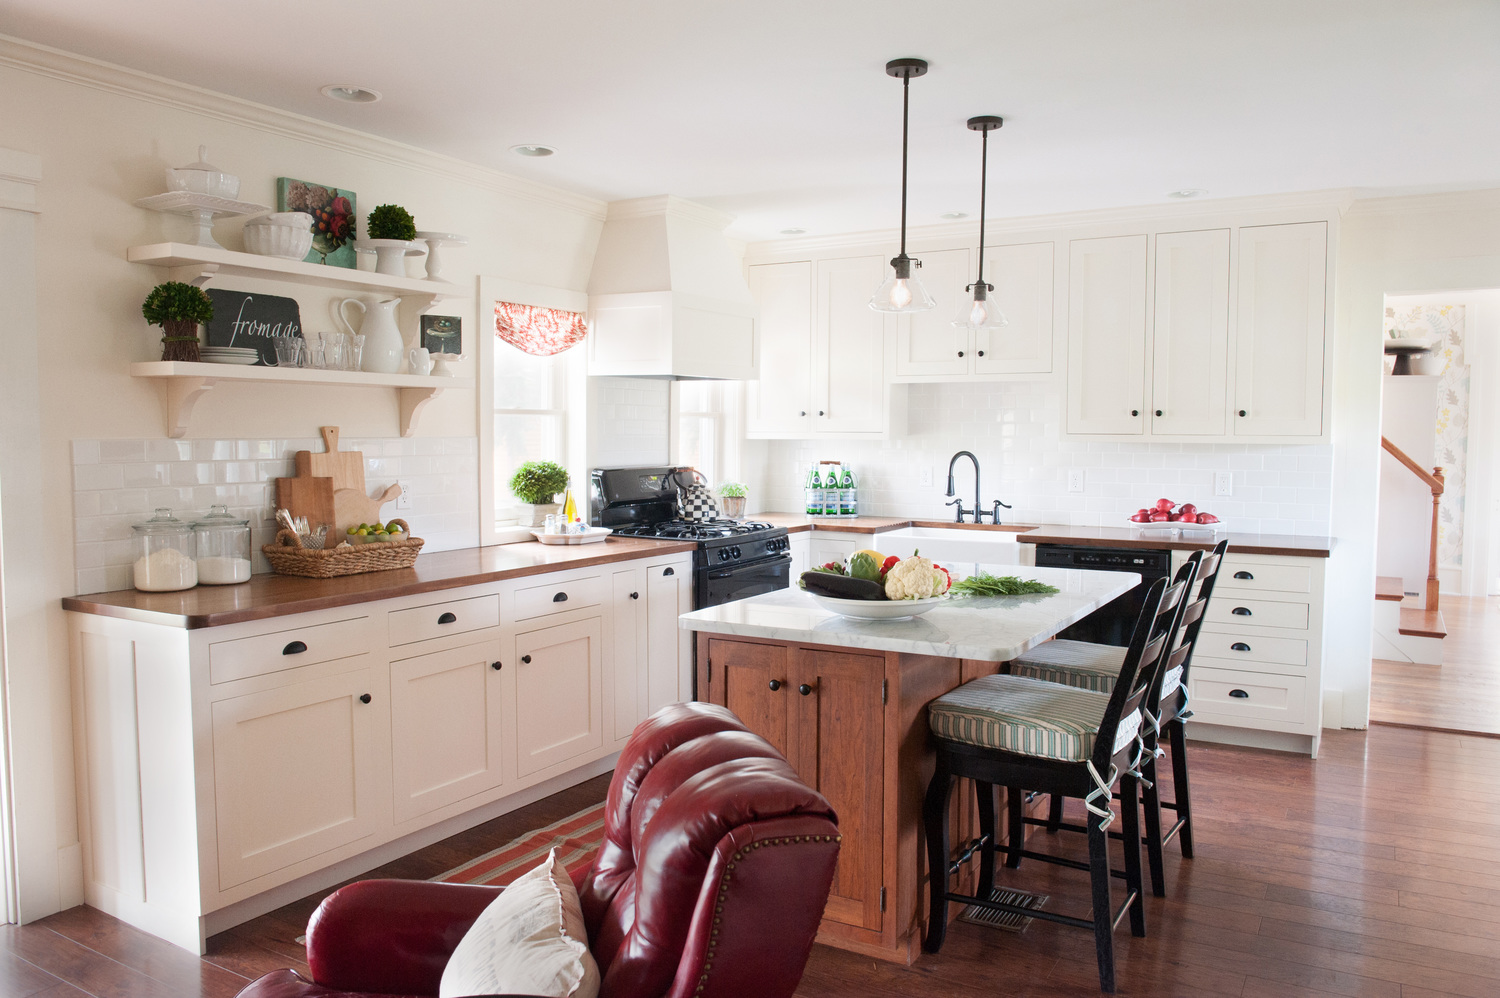 Teaselwood Farmhouse |  View Entire Project